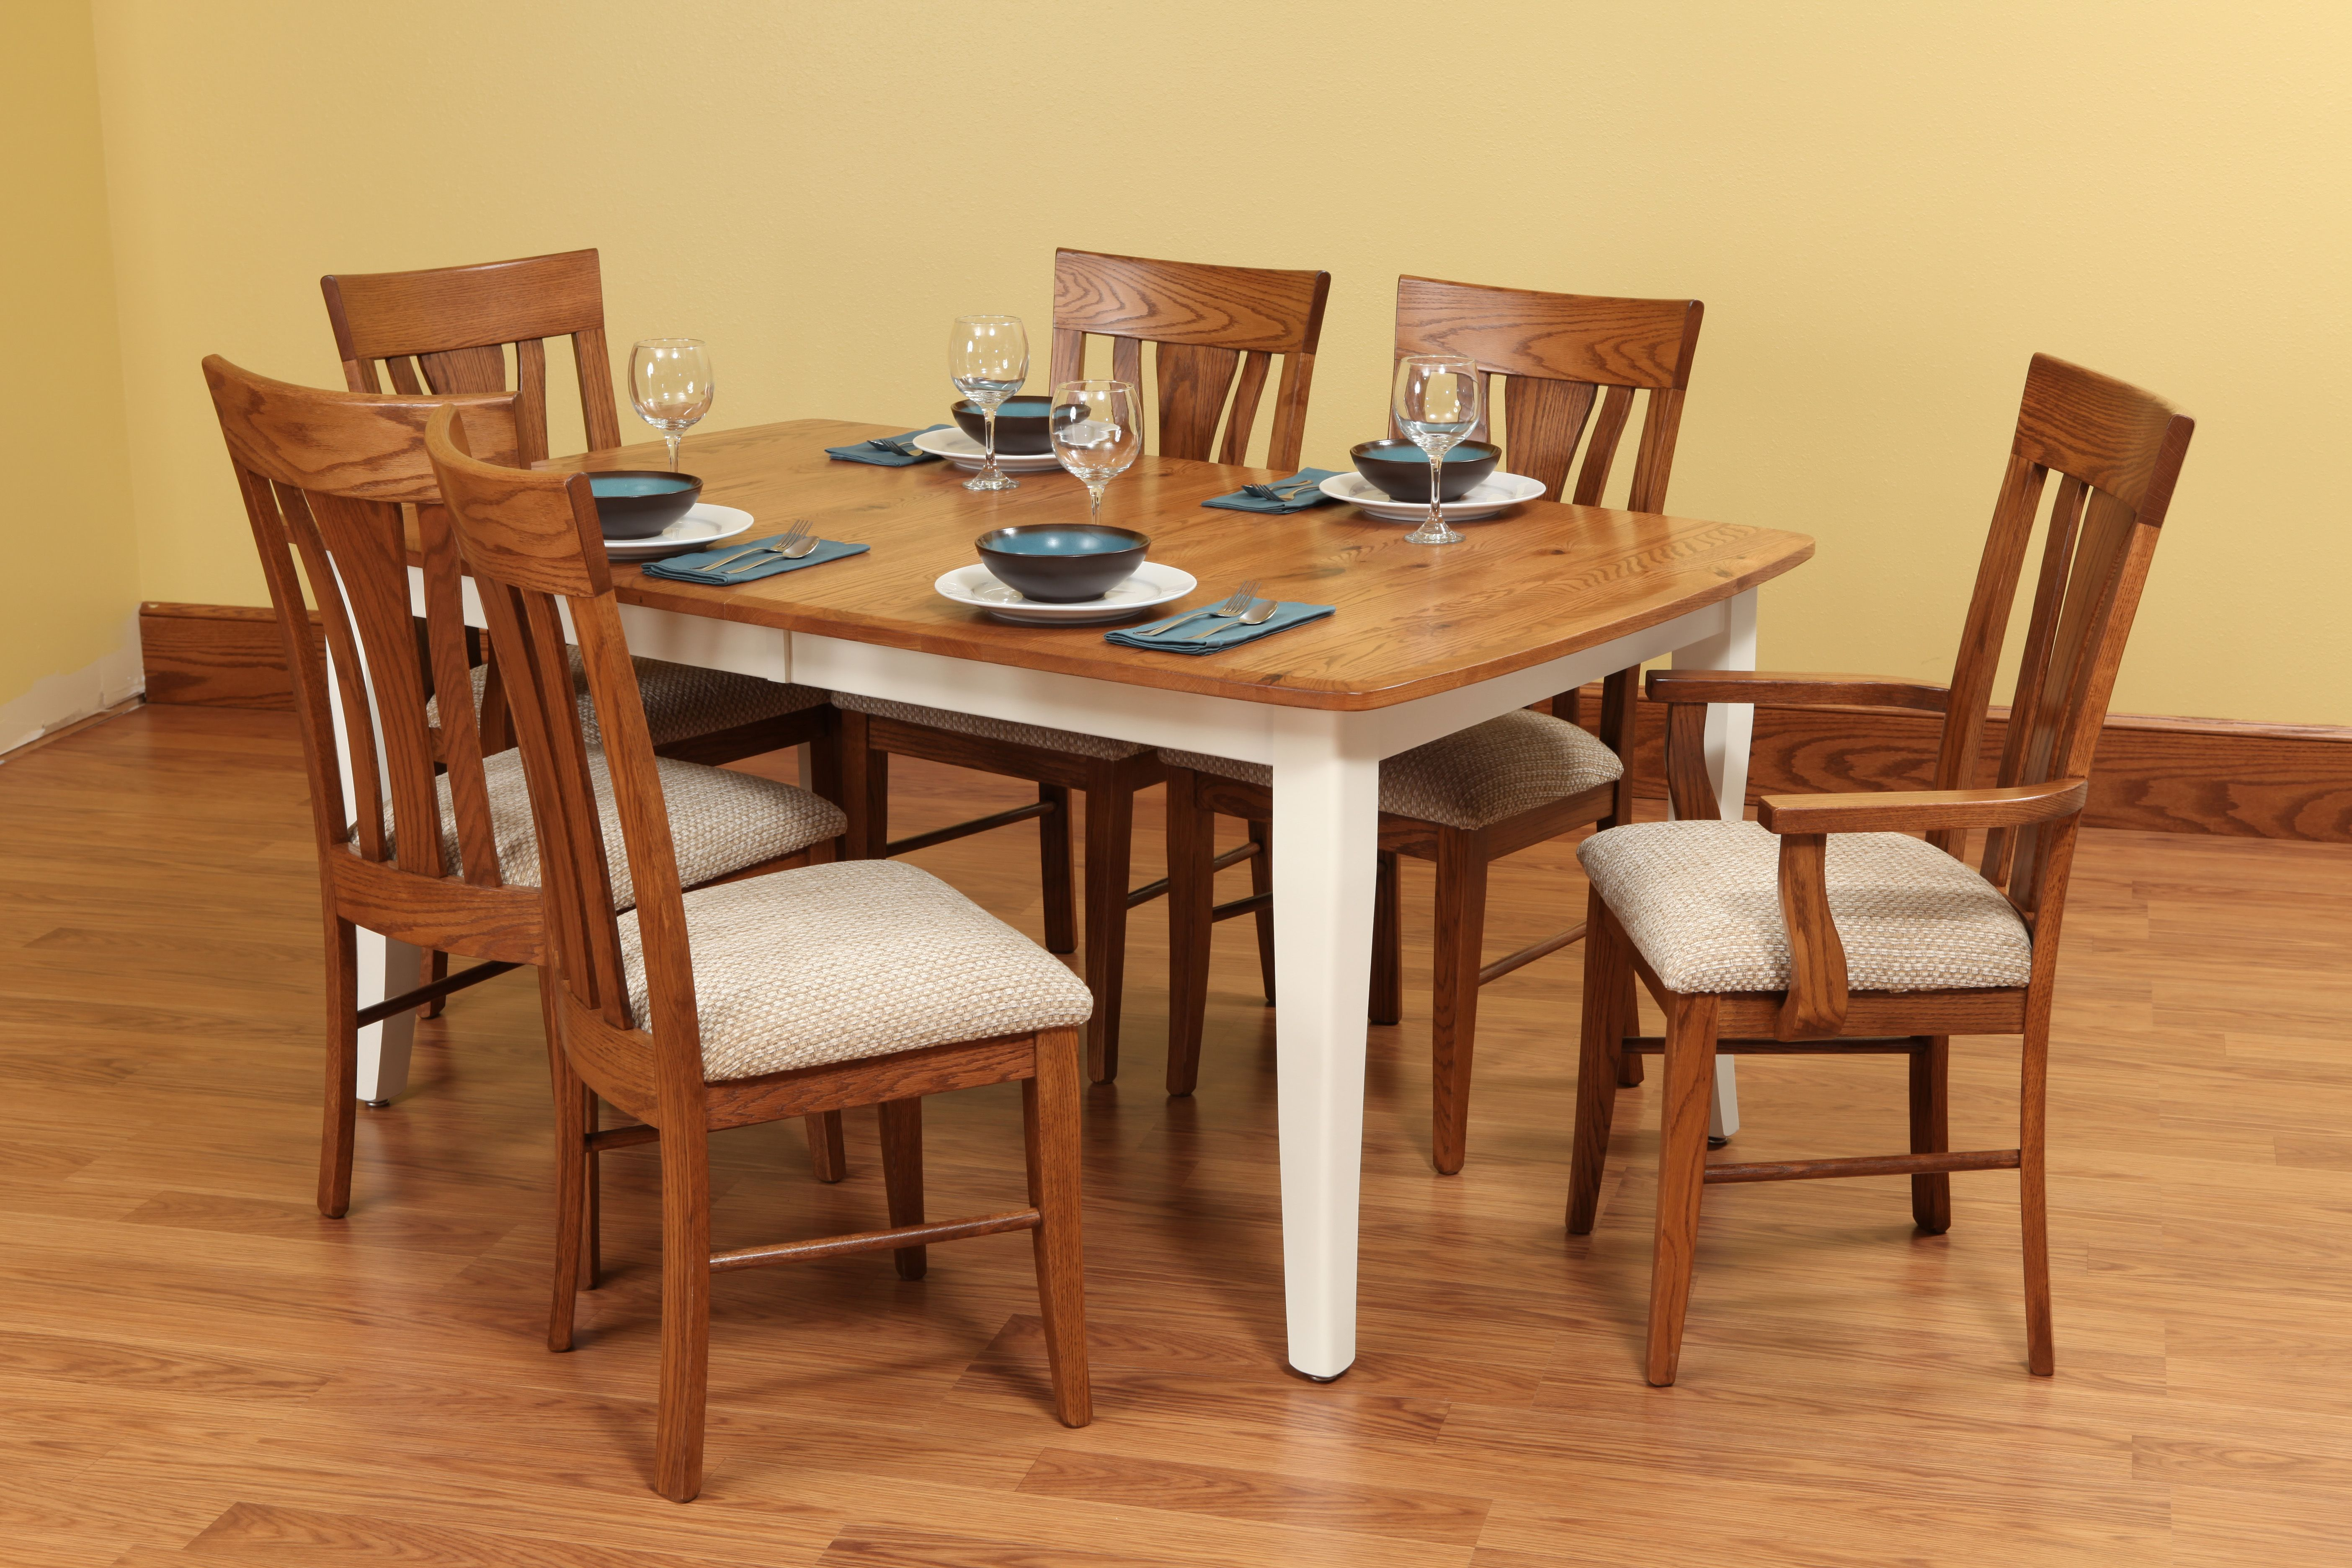 Easton Pike Set With Images Amish Furniture Dining Room Table